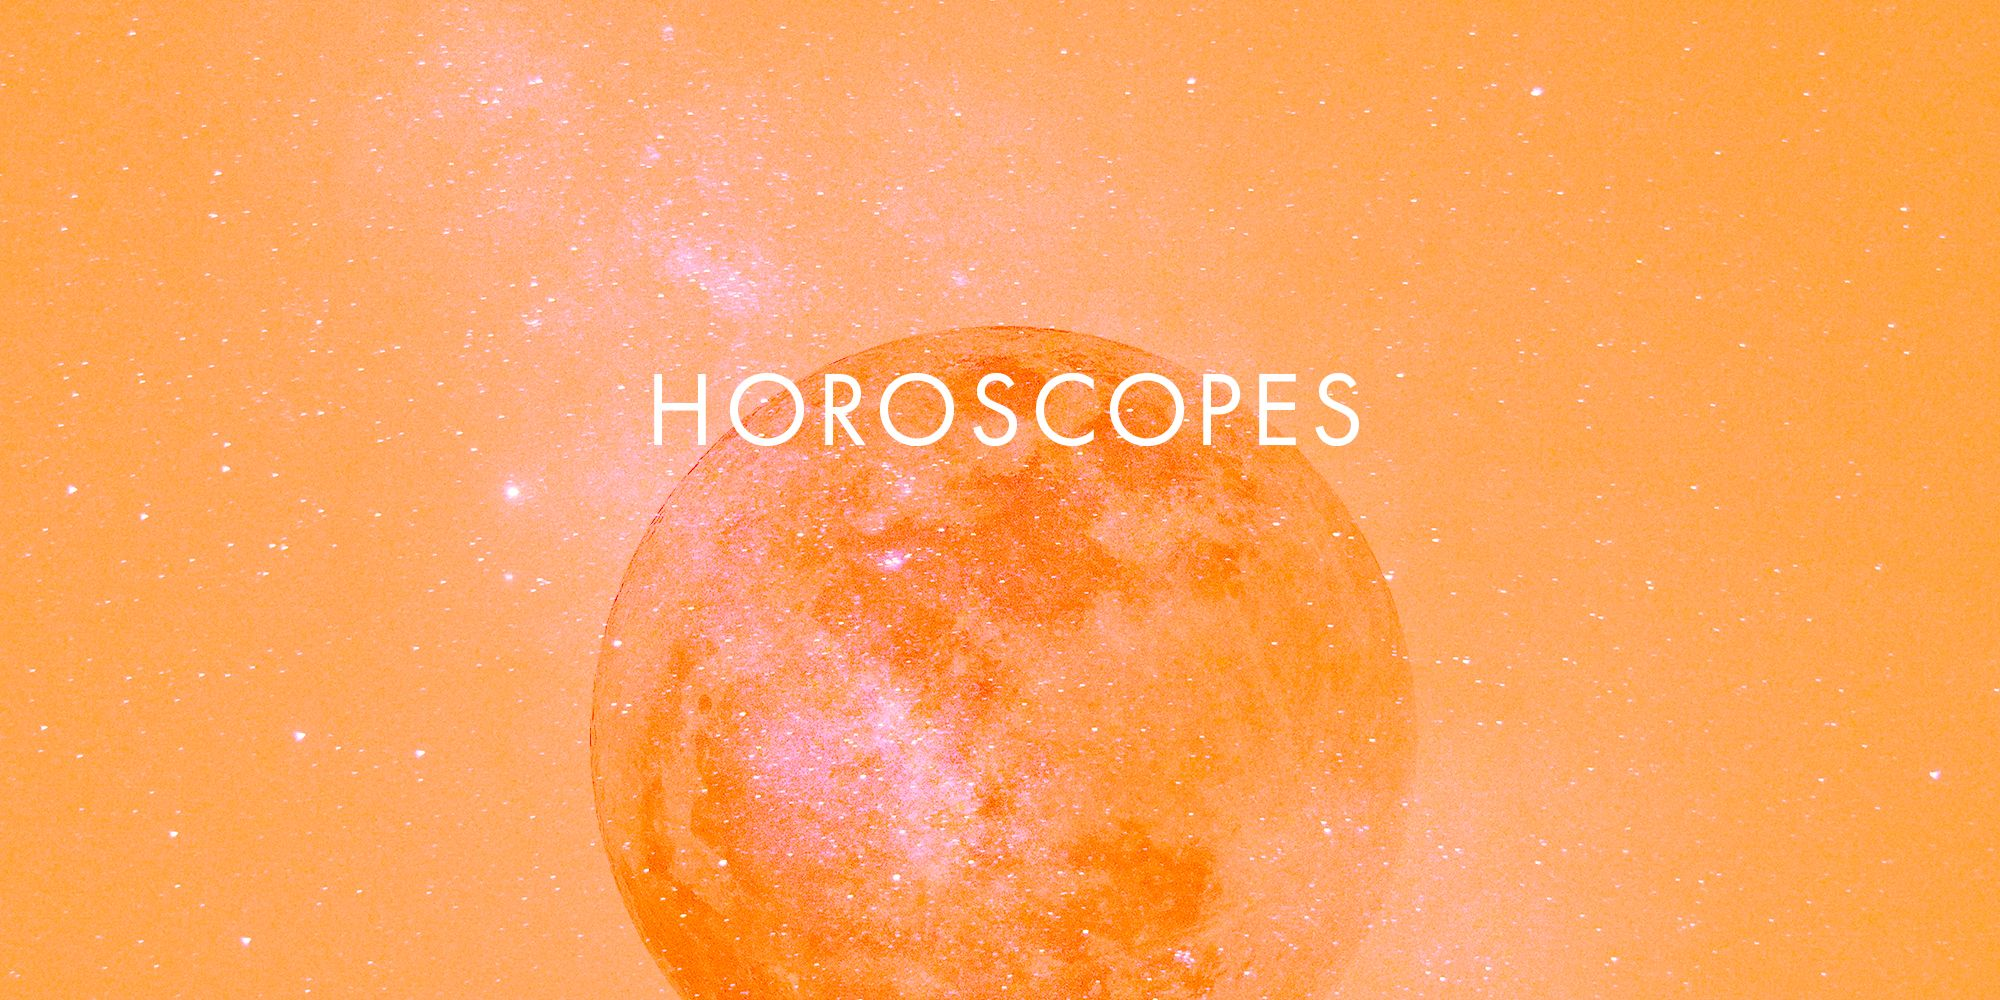 Your Horoscope for the Week of May 27